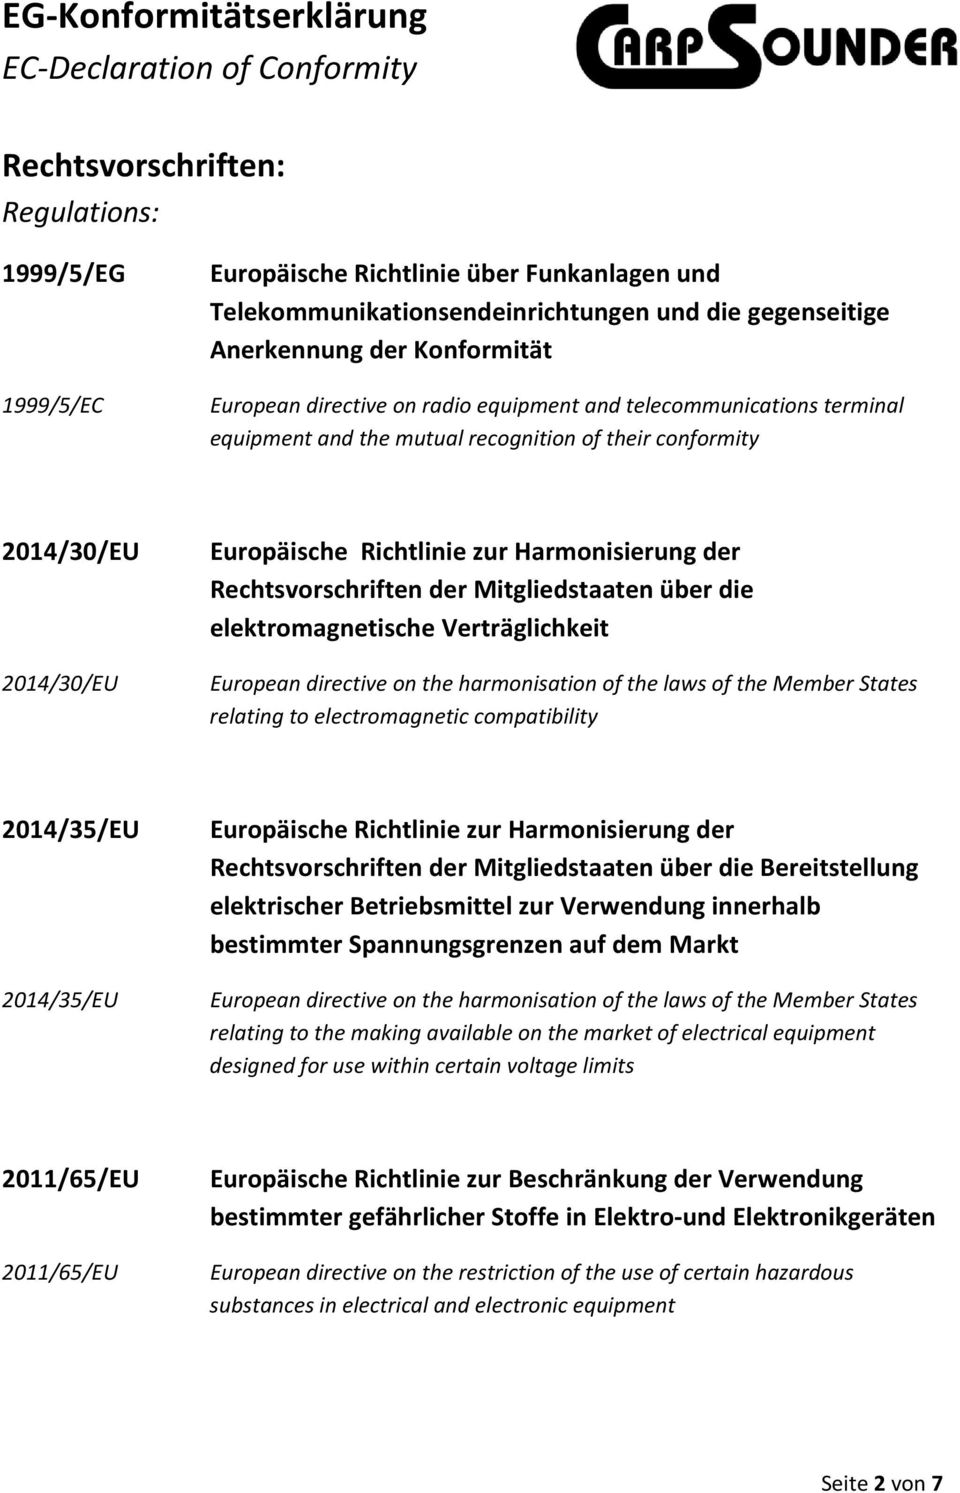 Mitgliedstaaten über die elektromagnetische Verträglichkeit European directive on the harmonisation of the laws of the Member States relating to electromagnetic compatibility 2014/35/EU 2014/35/EU